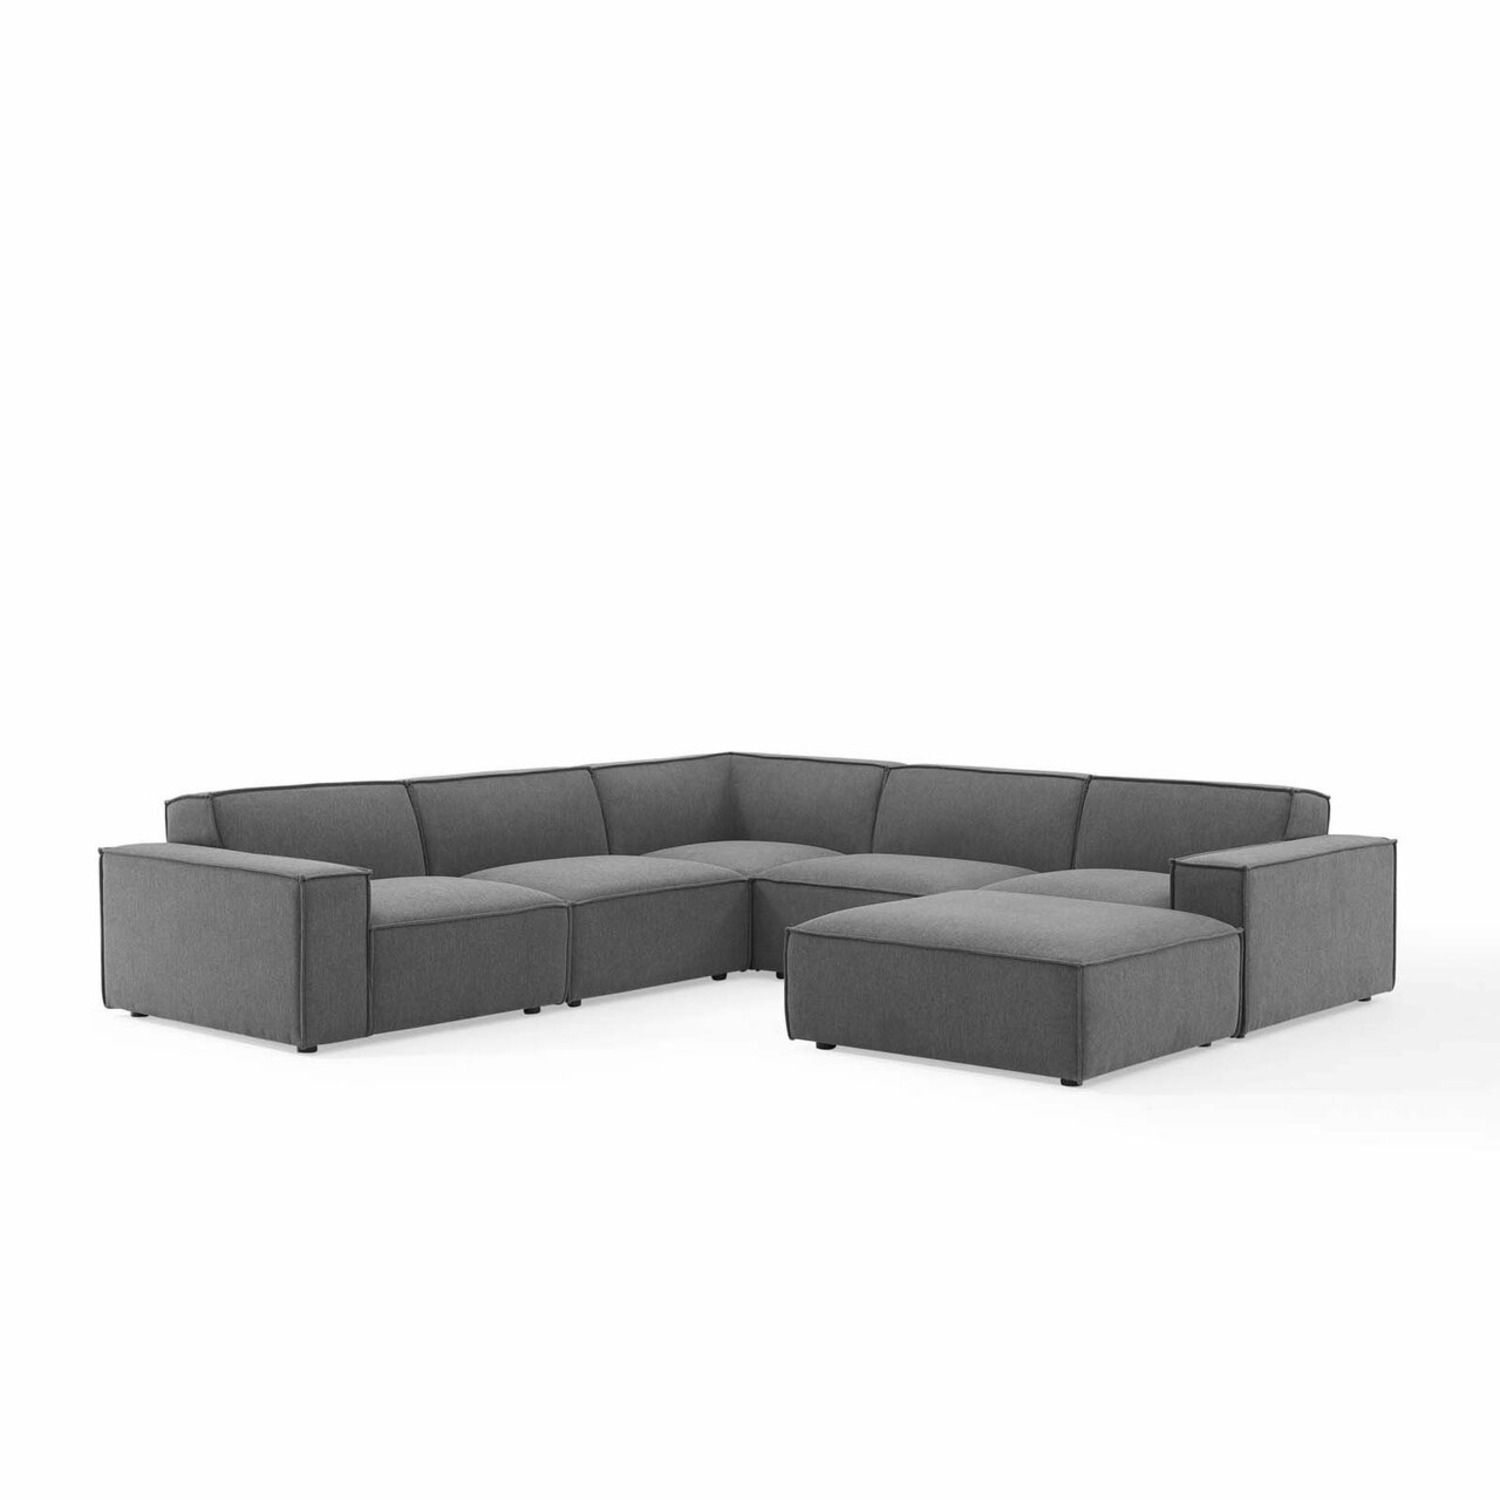 6-Piece Sectional Sofa In Charcoal Fabric - image-0